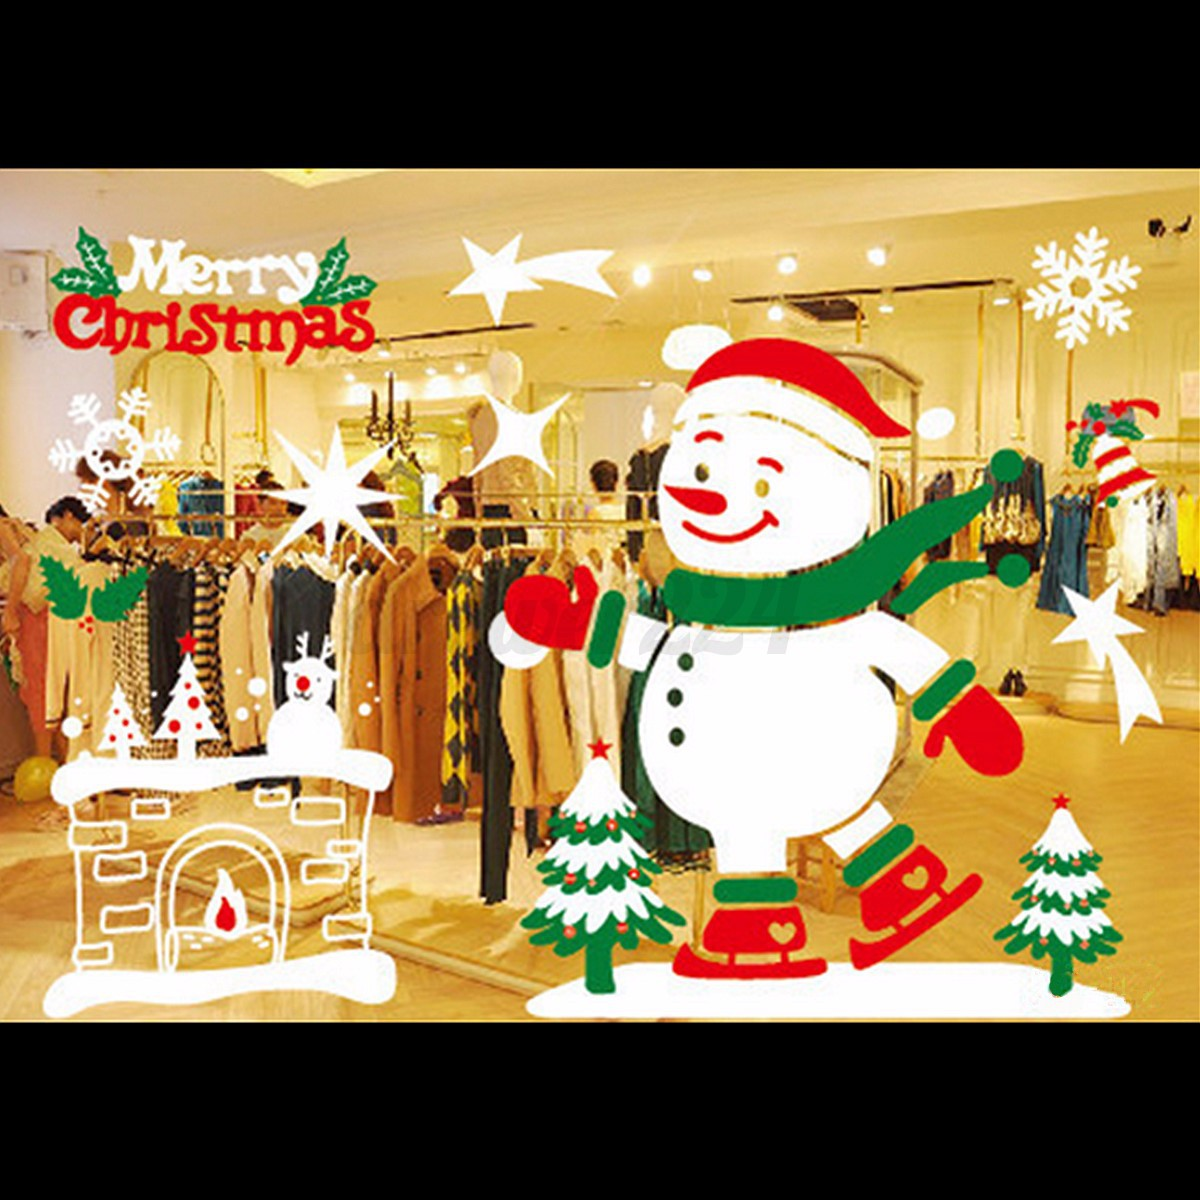 Christmas decals decor art removable mural show window for Christmas window mural